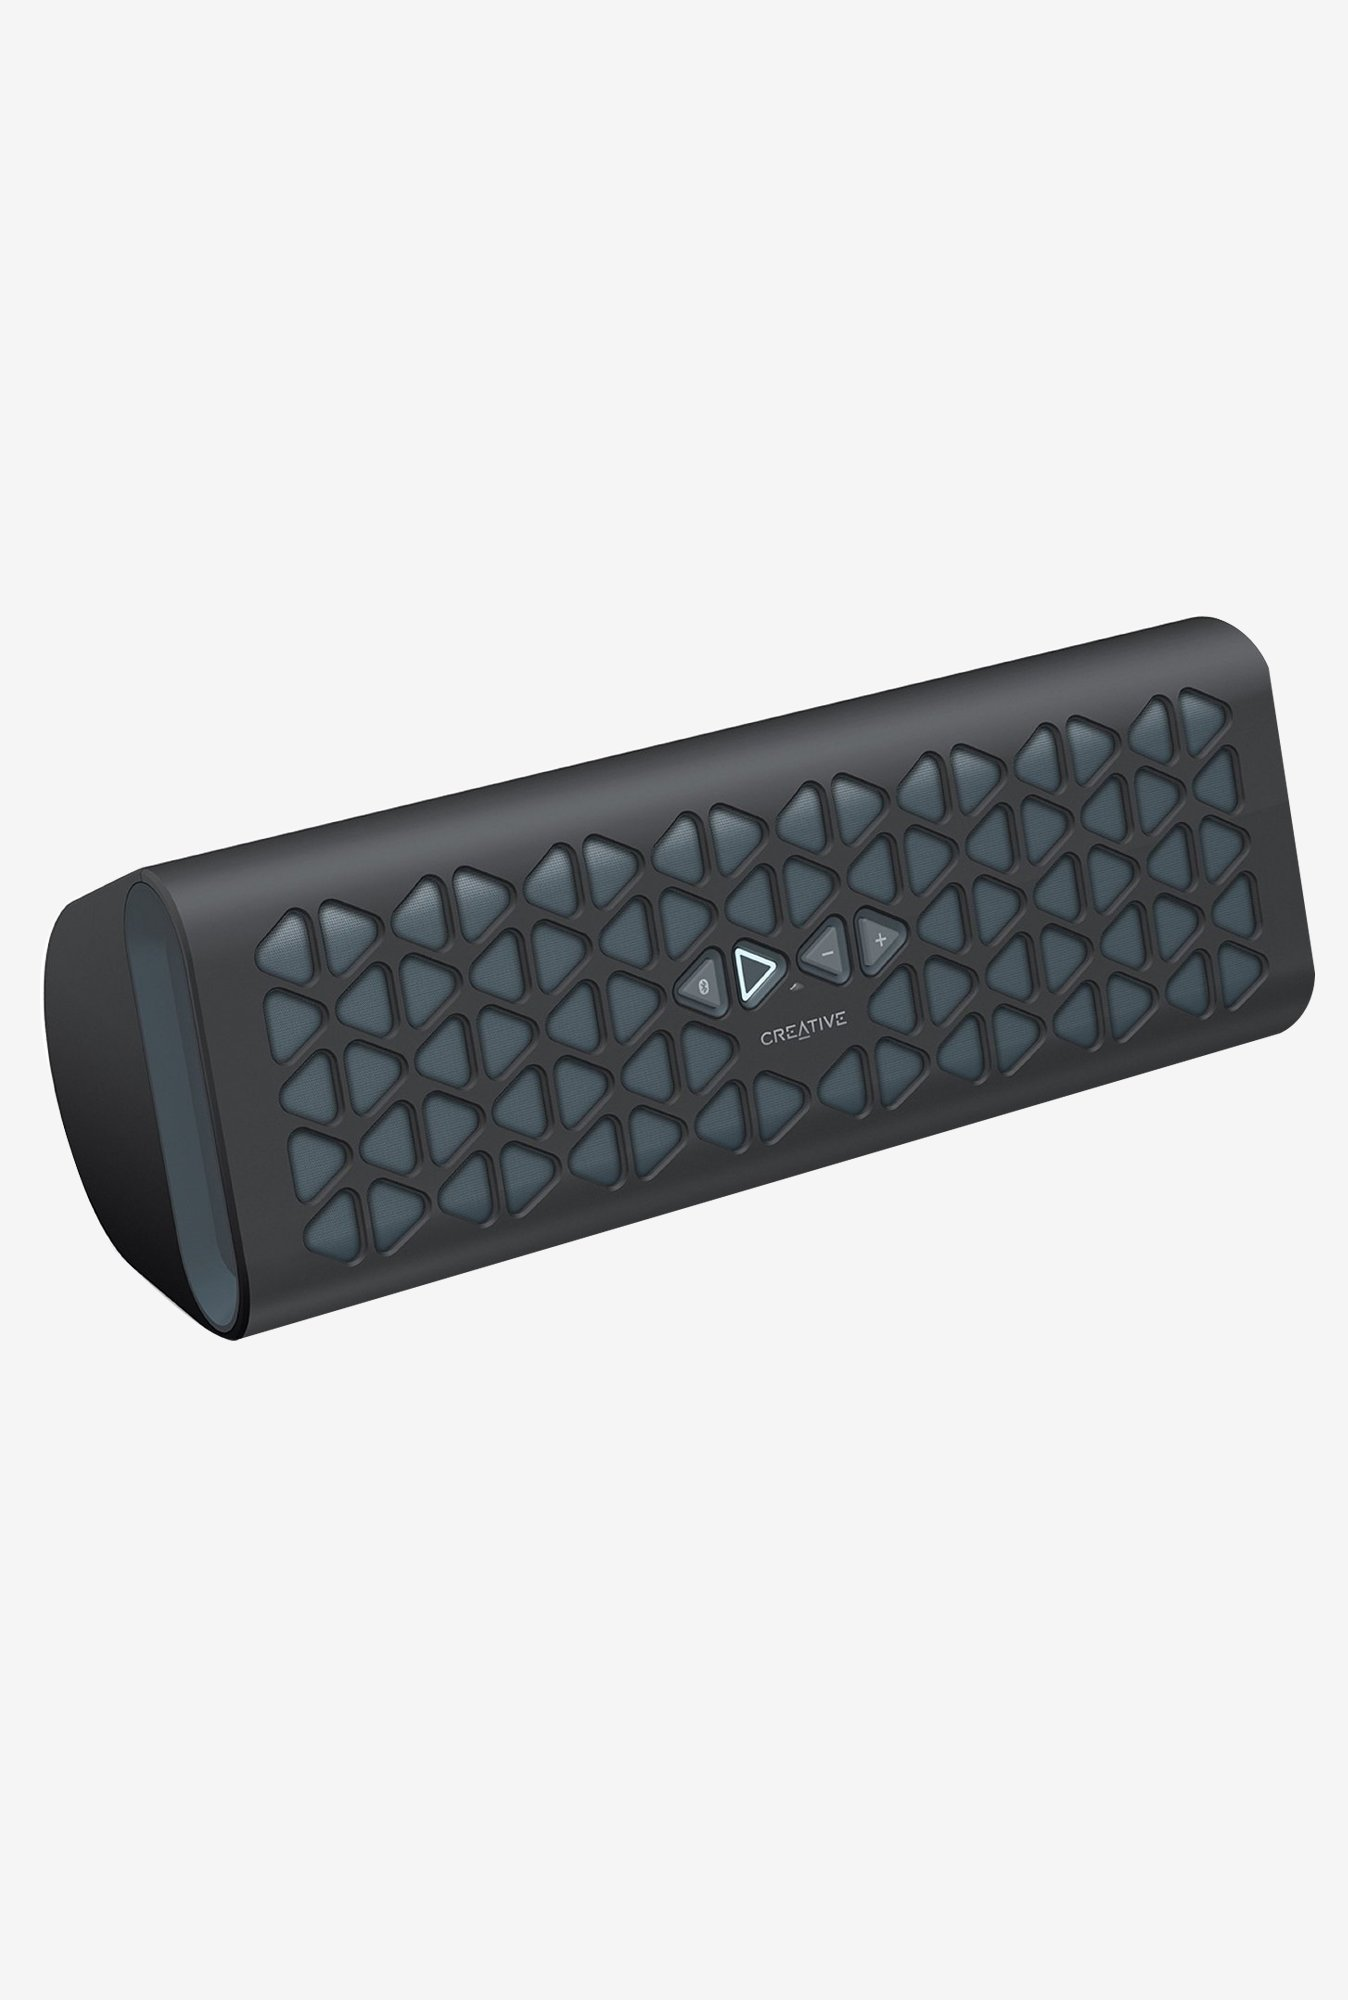 Creative Muvo 20 Portable Wireless Speaker (Black)